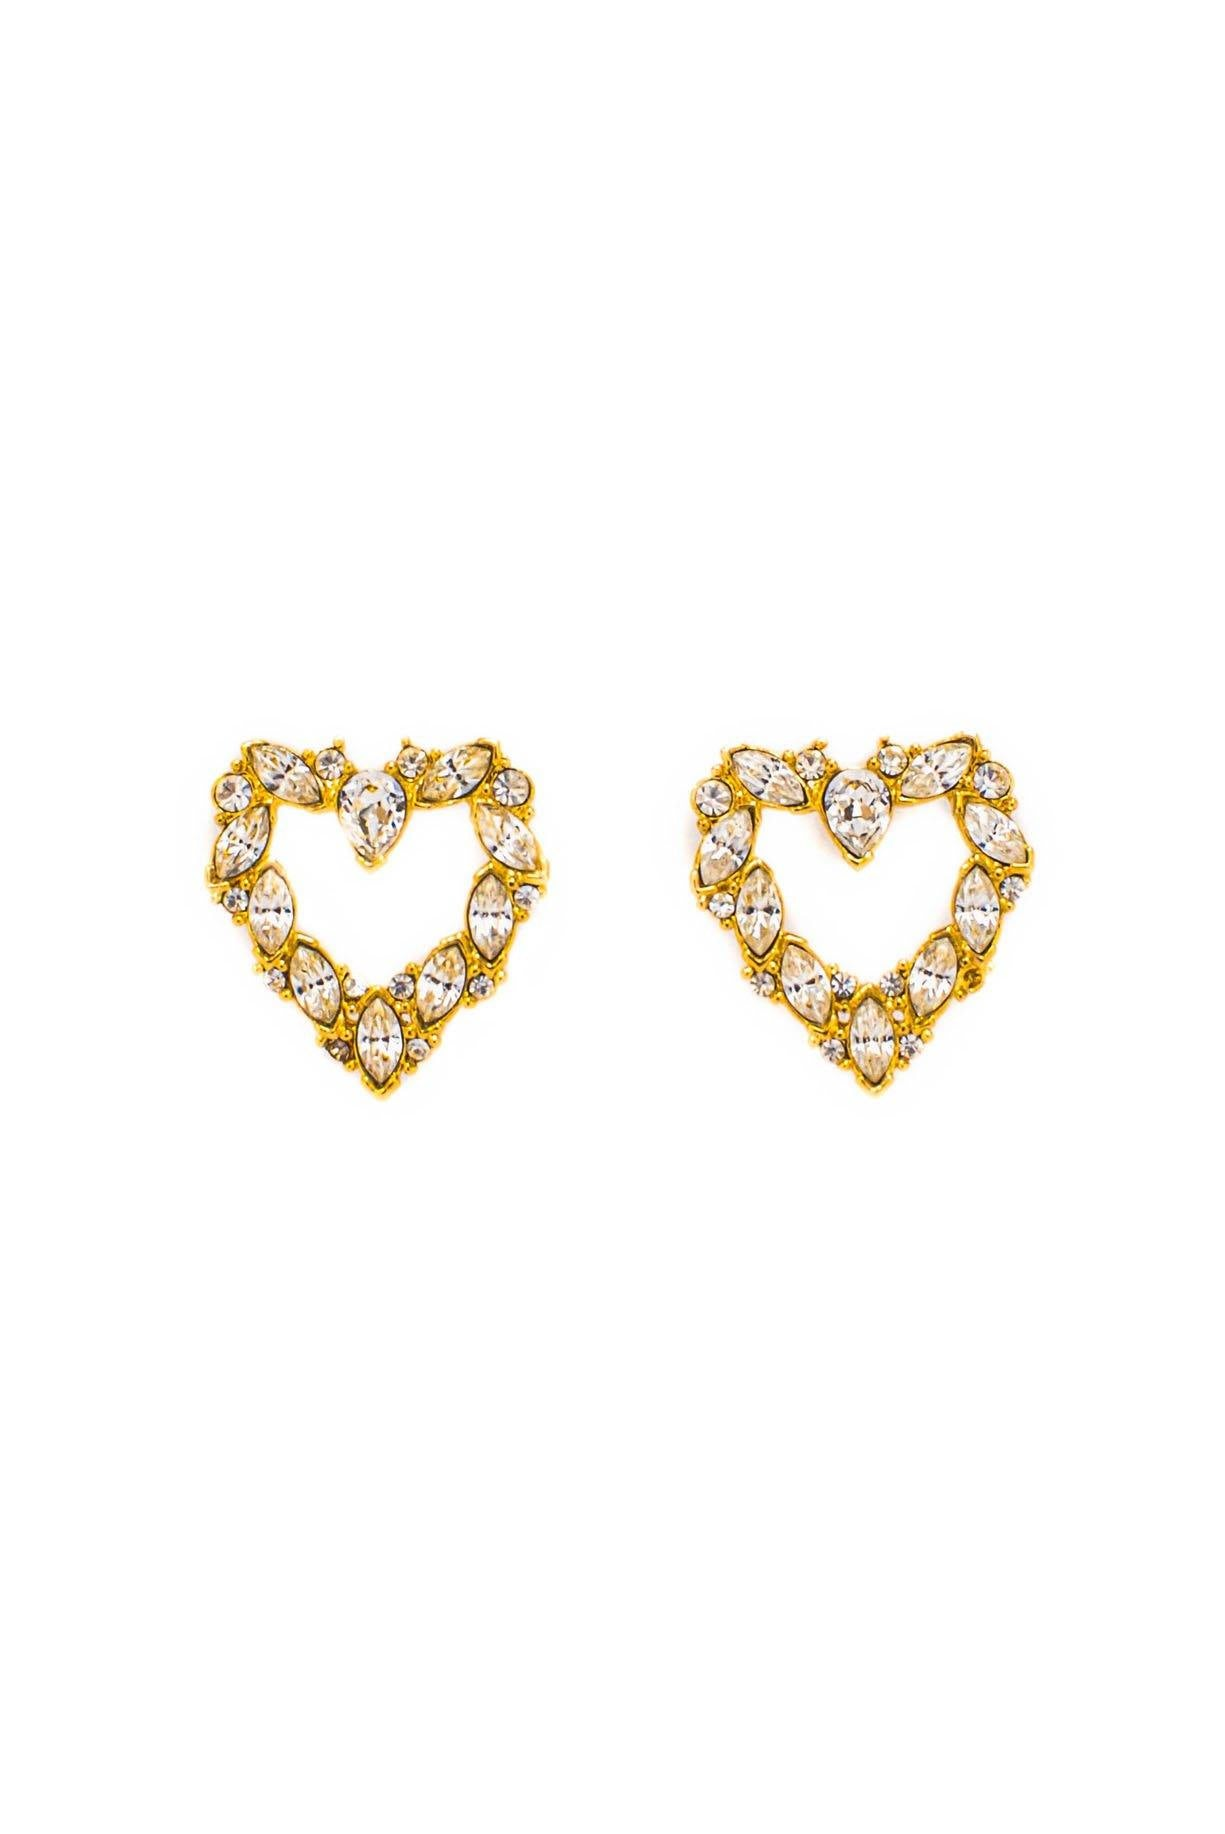 Vintage Rhinestone Heart Pierced Earrings from Sweet and Spark